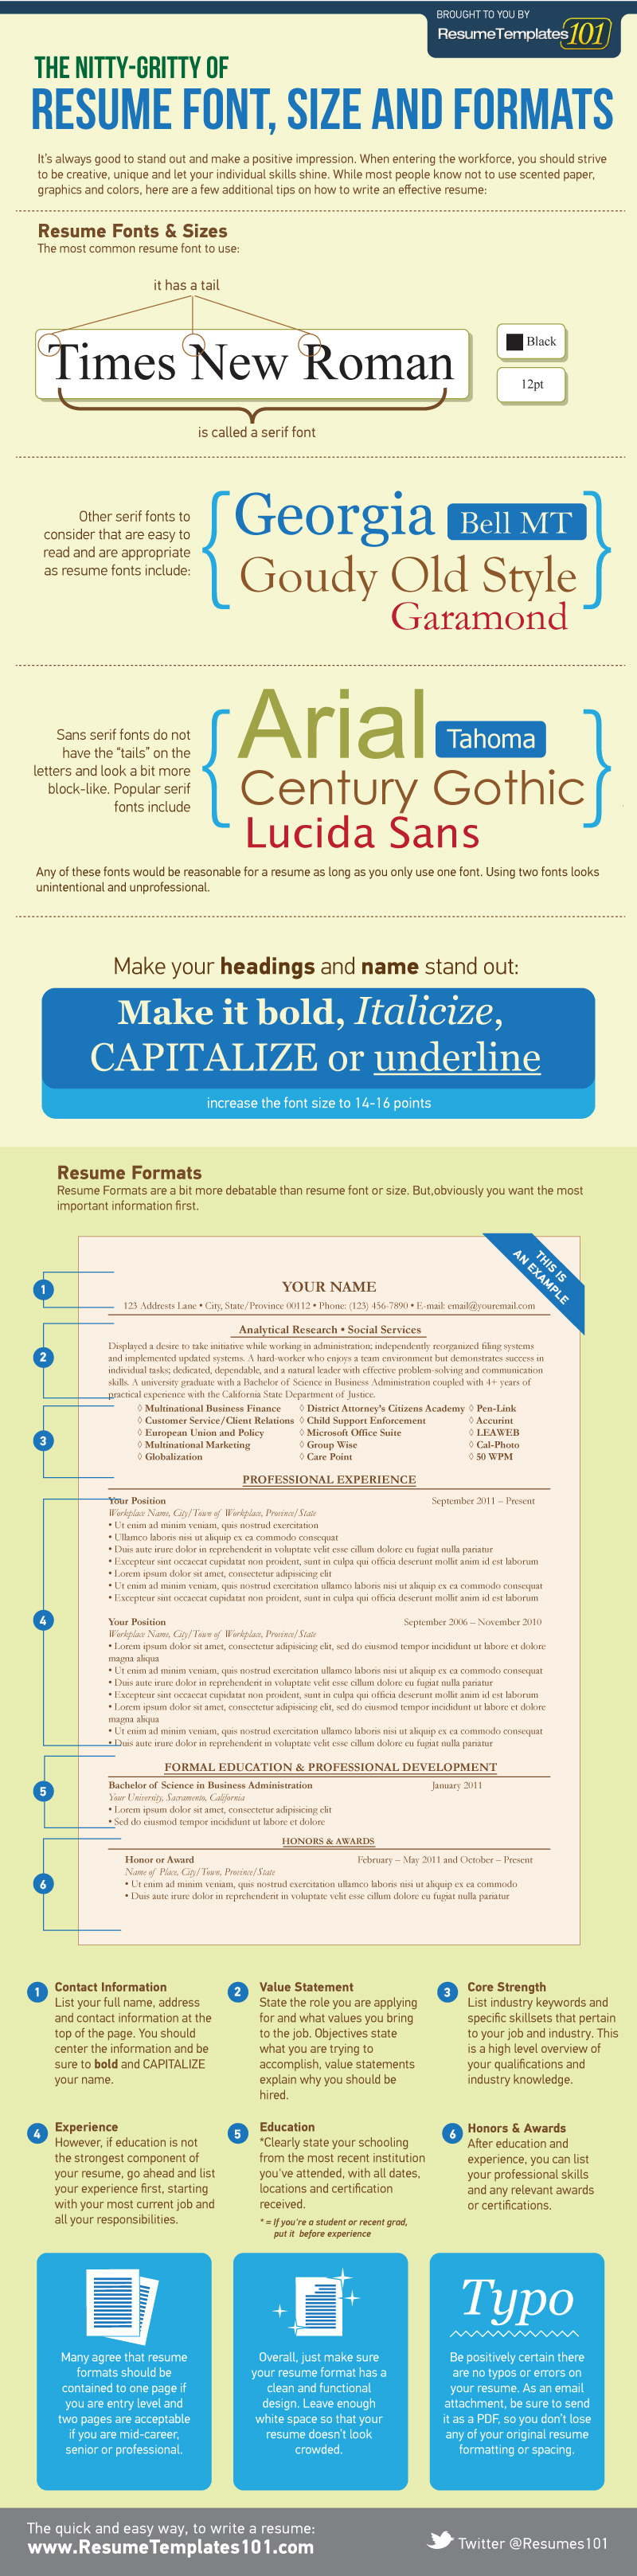 Perfect Resume Font, Size And Formats  Infographic